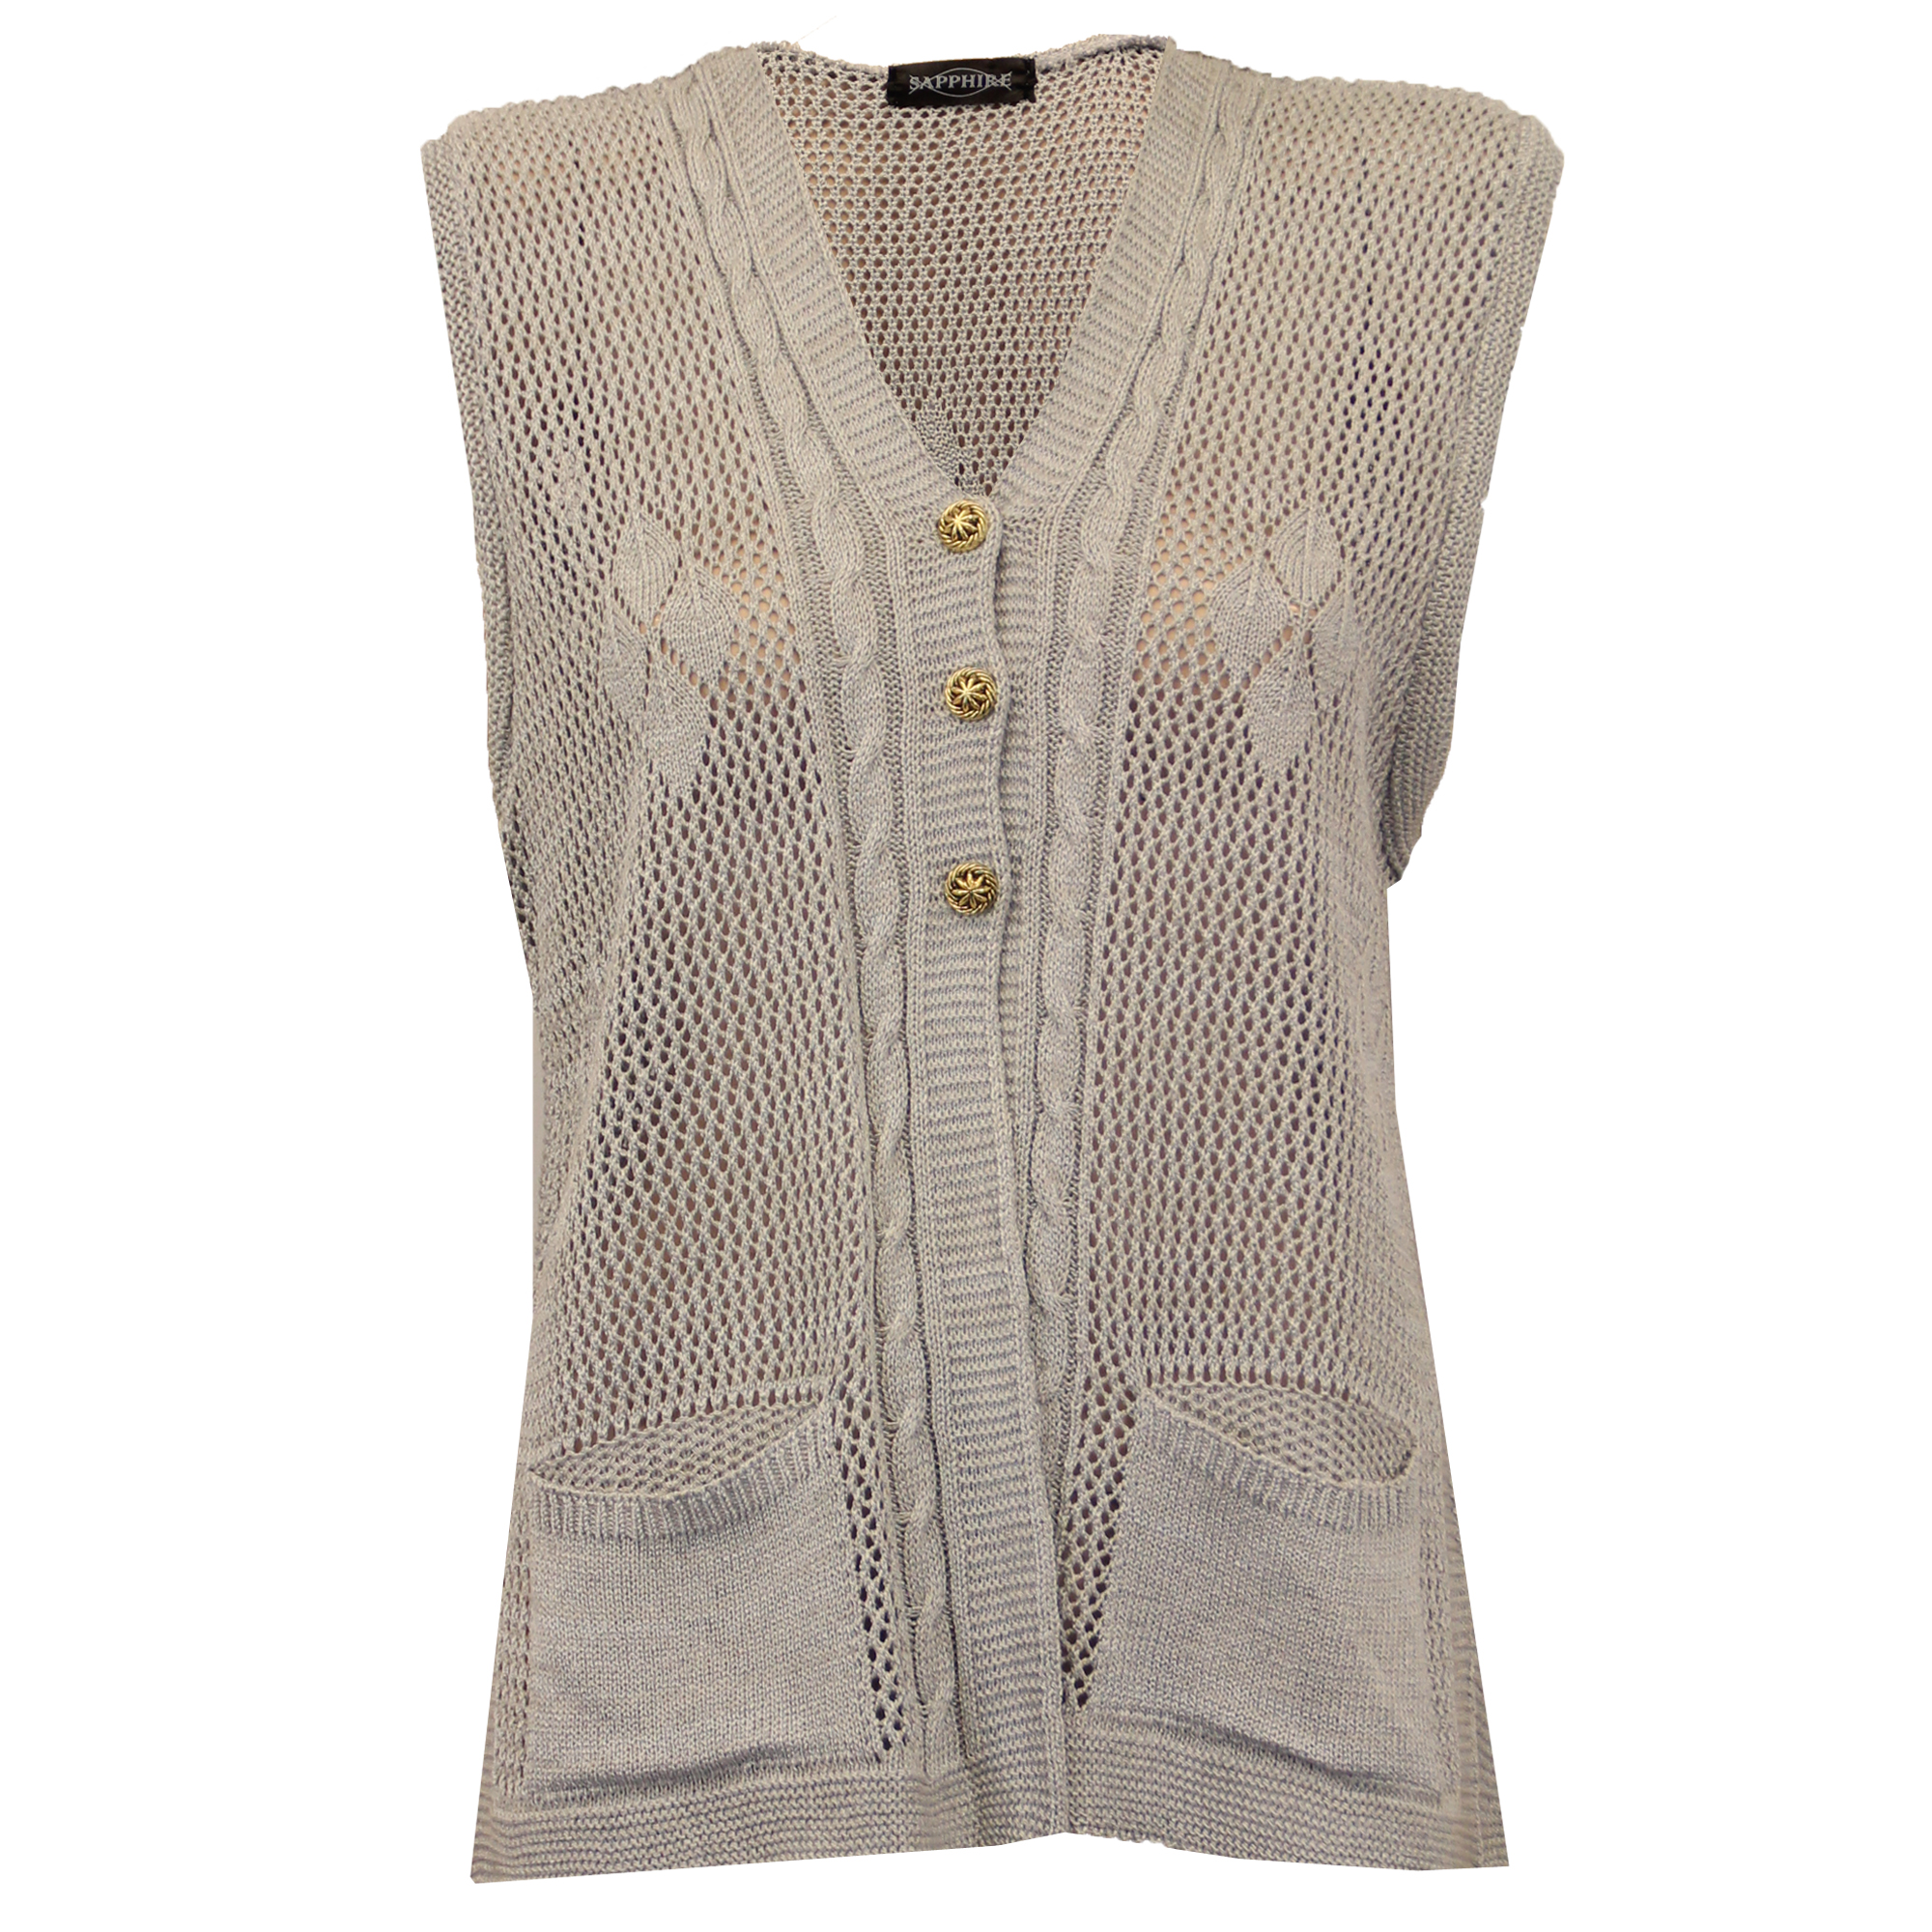 Ladies Cardigans Womens Gilet Knitted Crochet Waistcoat ...